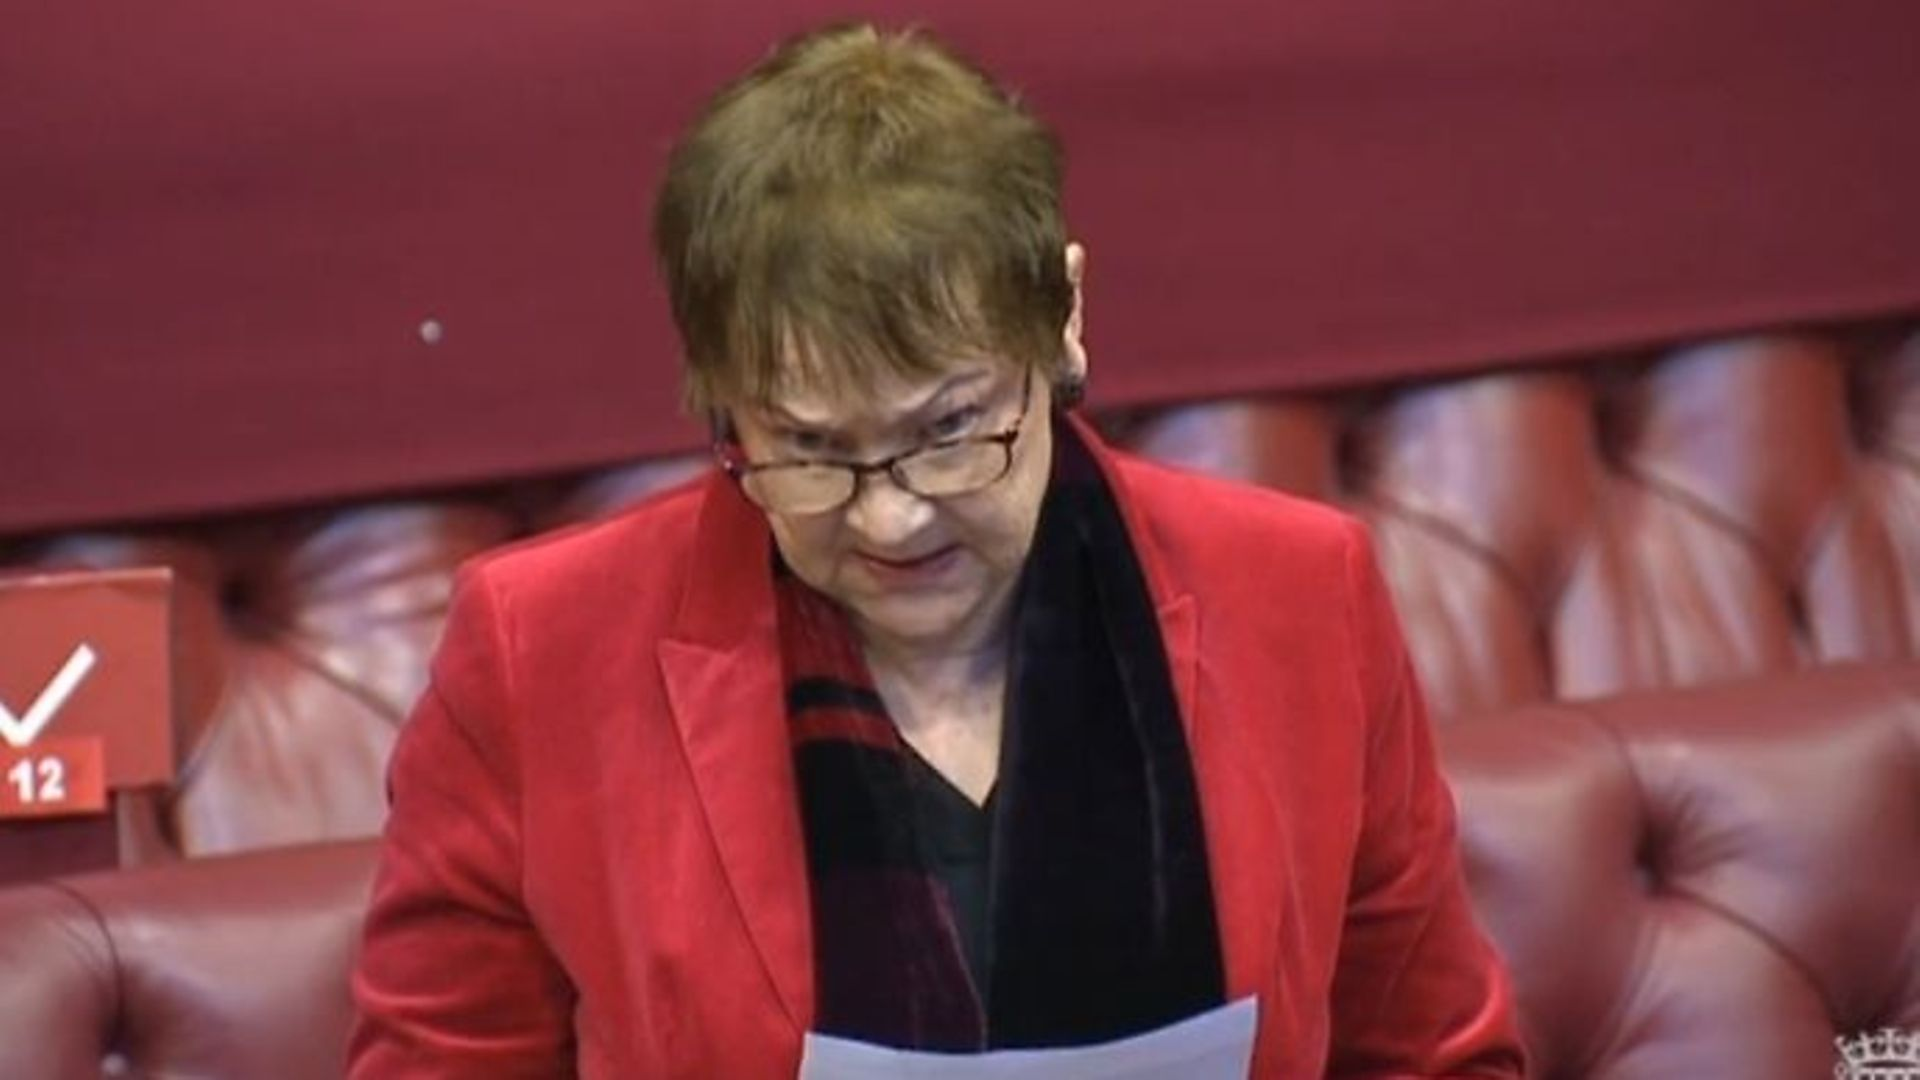 Liberal Democrat Baroness Ludford speaking in House of Lords - Credit: Parliamentlive.tv